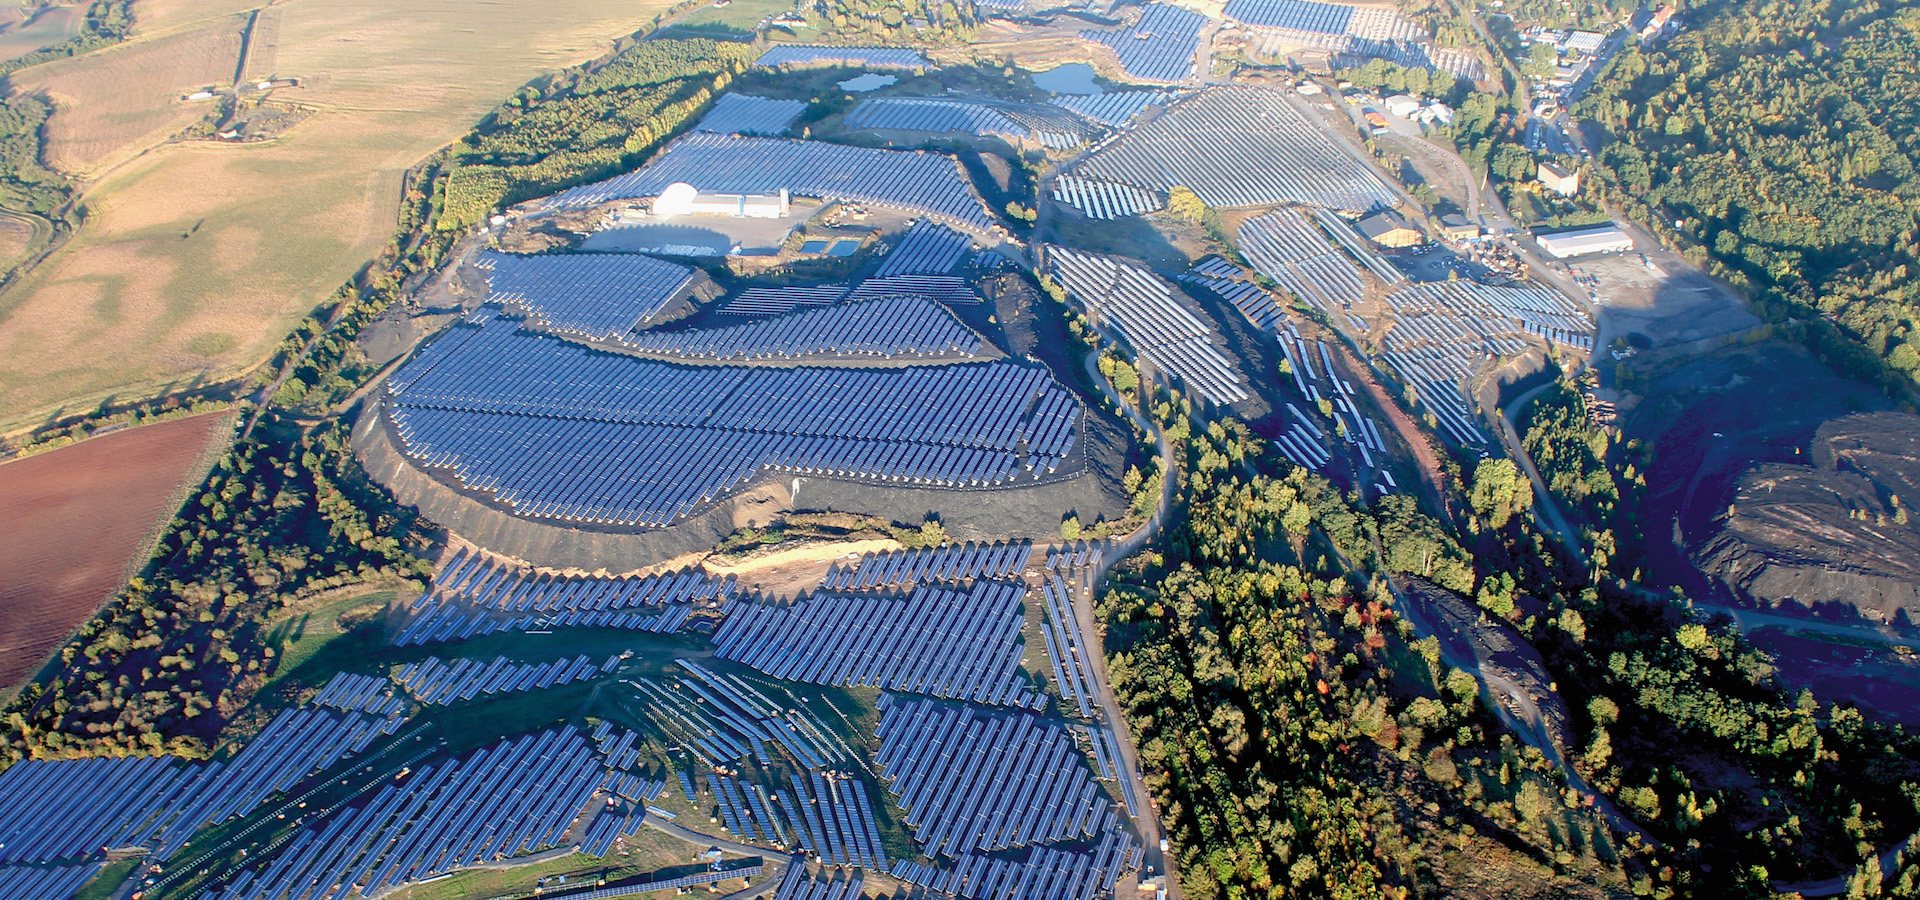 Solar Park from above on a sunny day